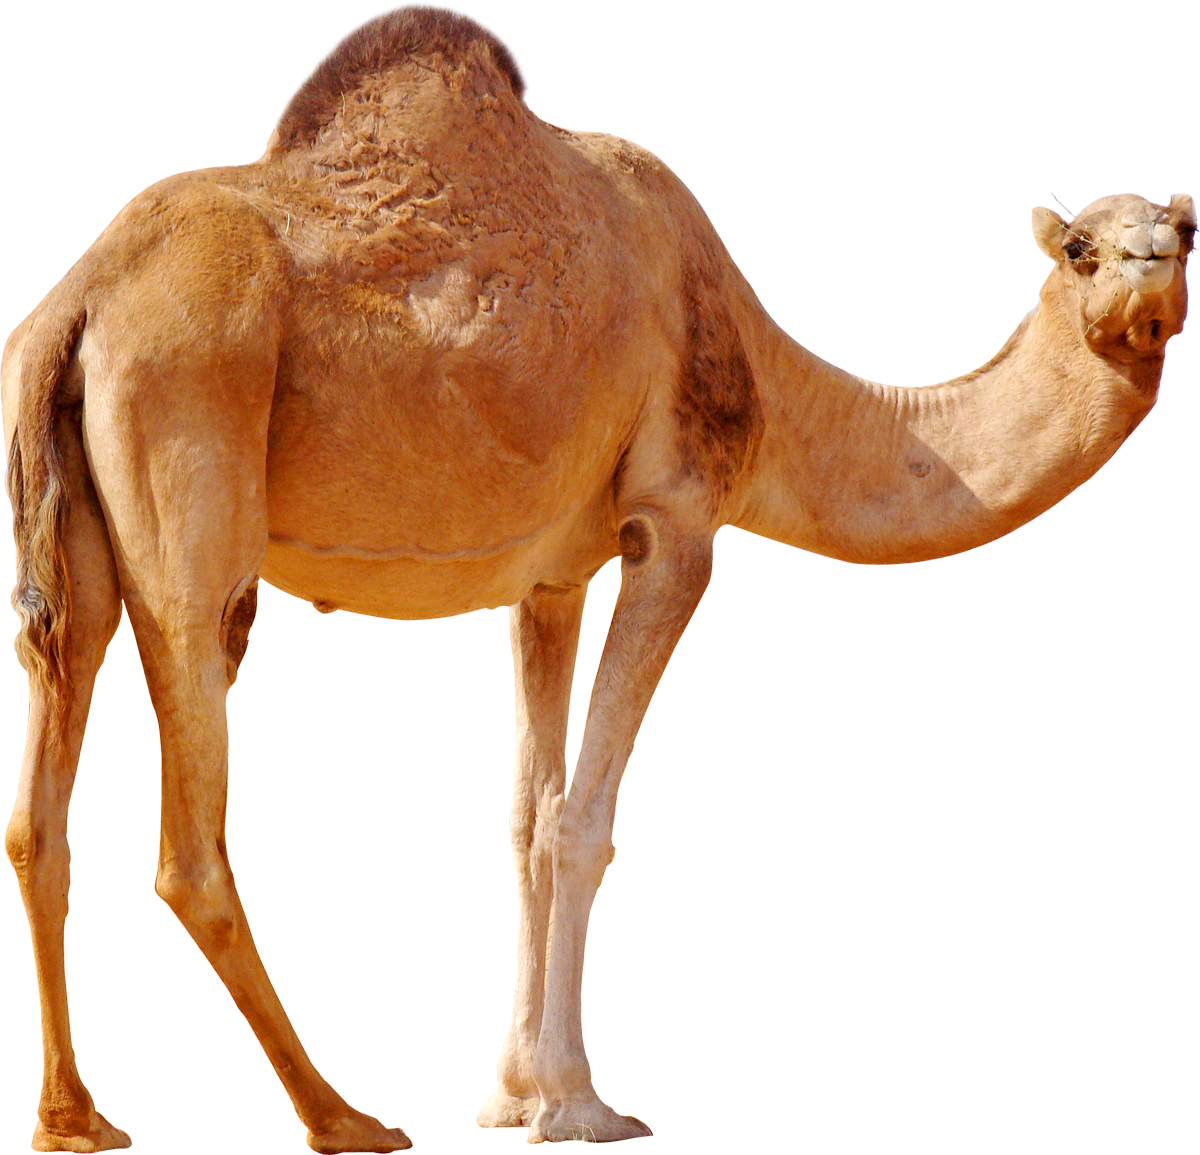 camel png image collection for download crazypng #21379